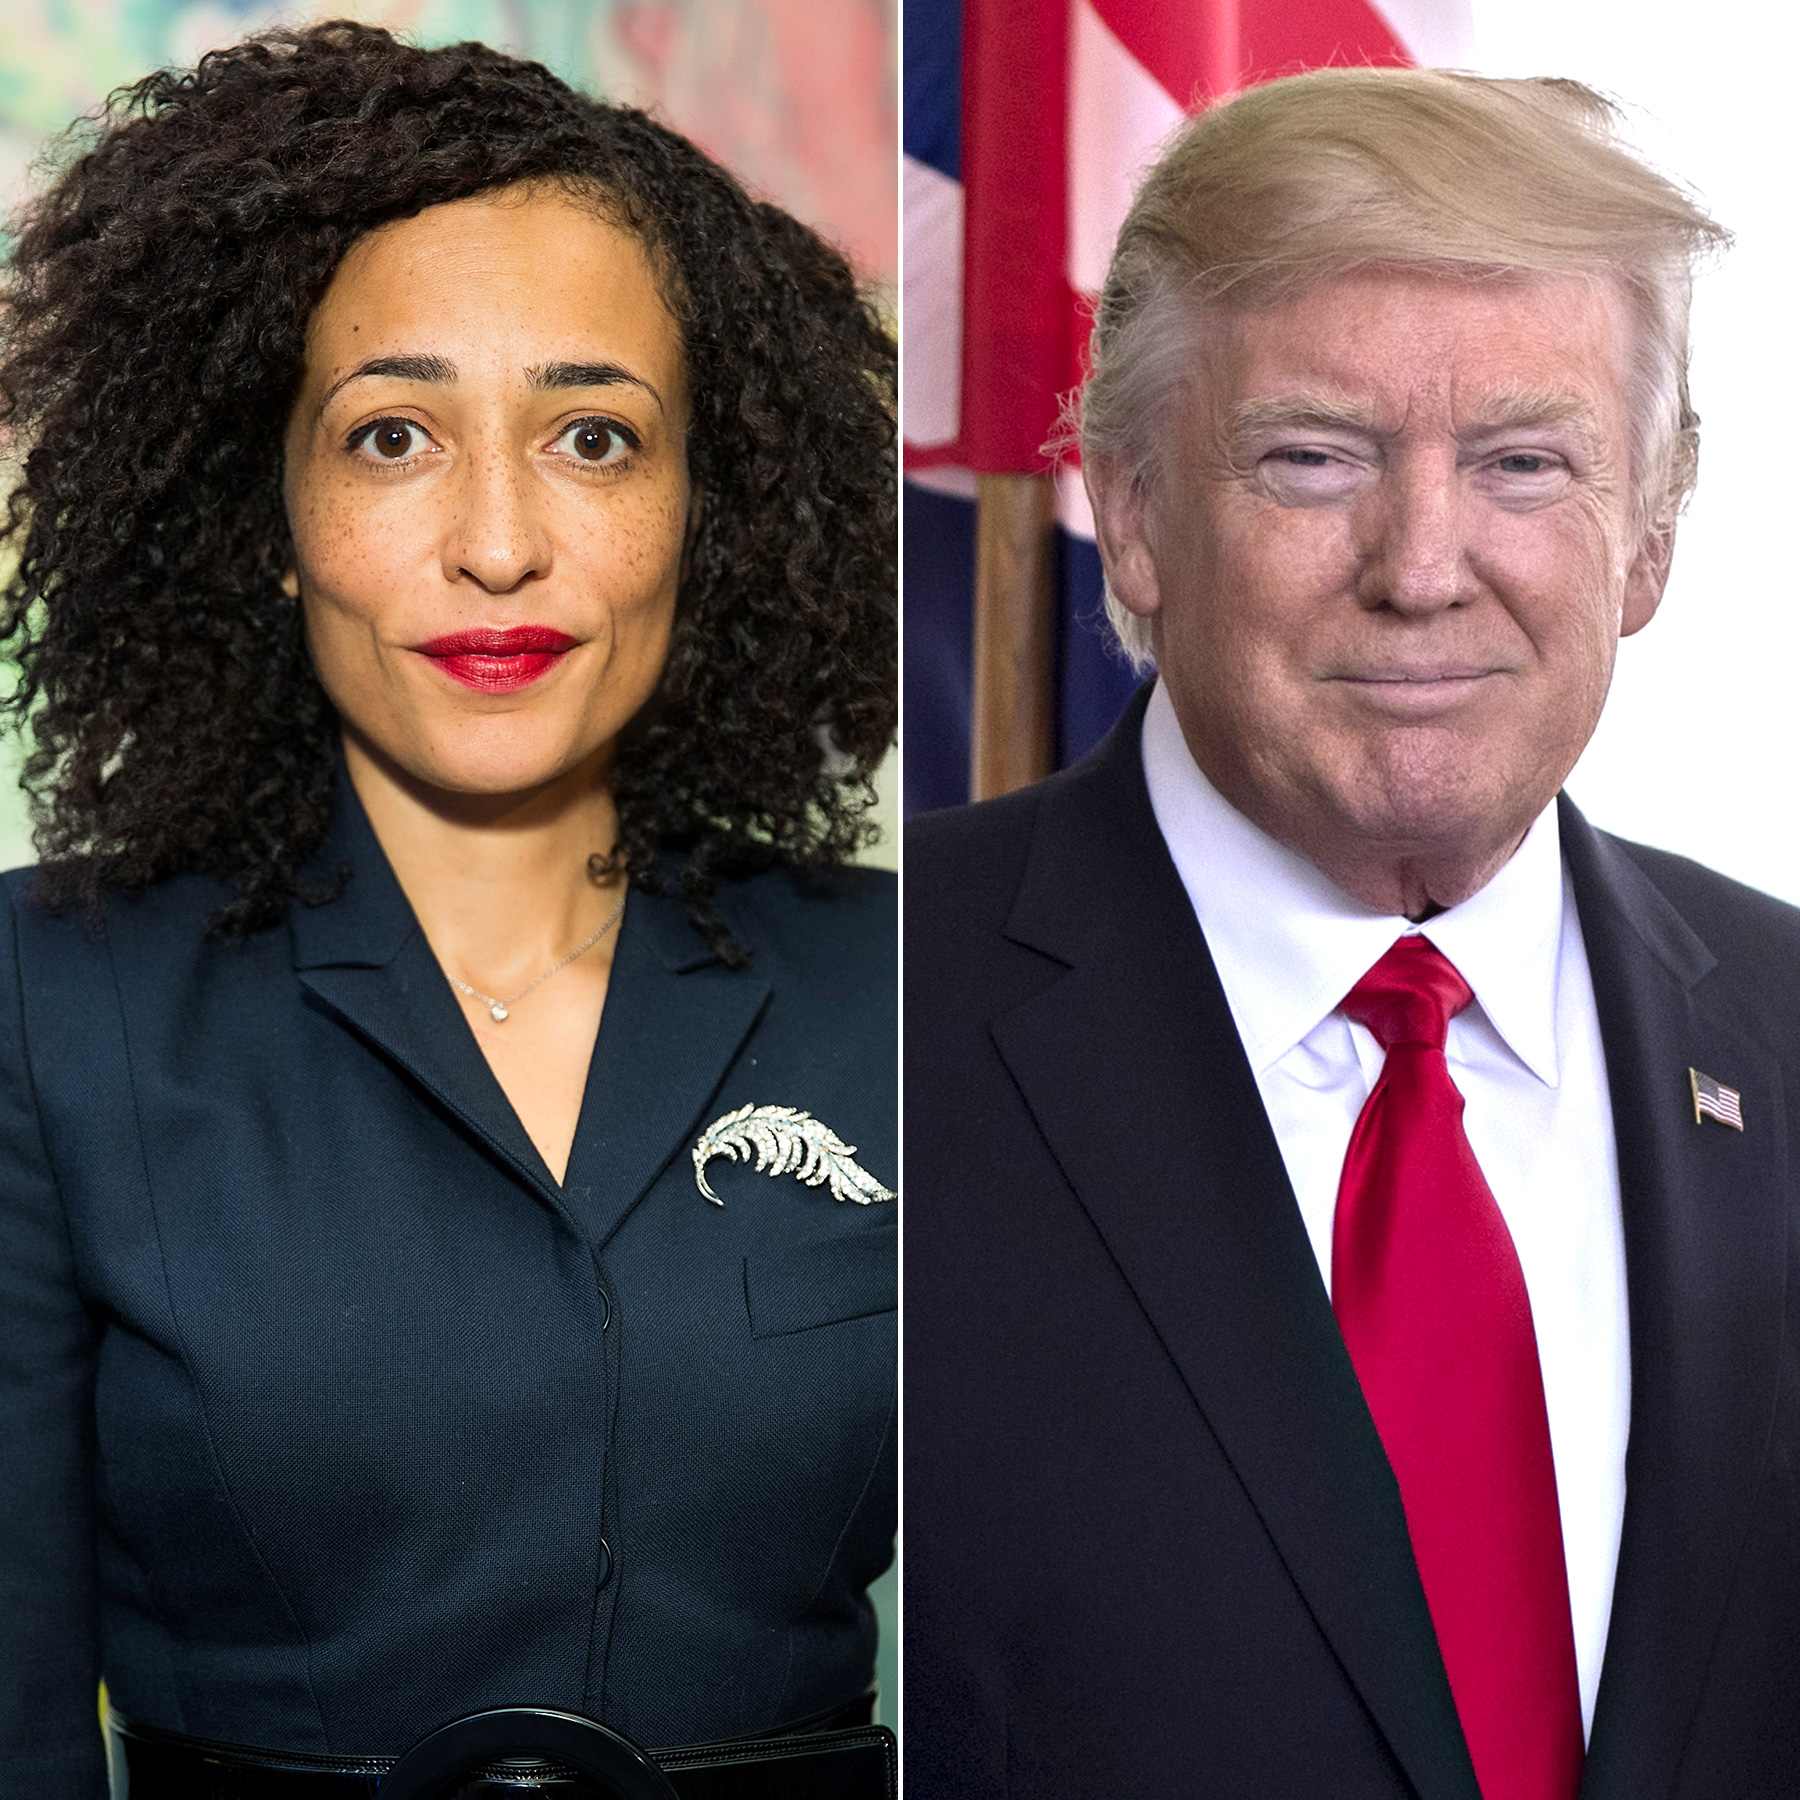 Zadie Smith and Donald Trump